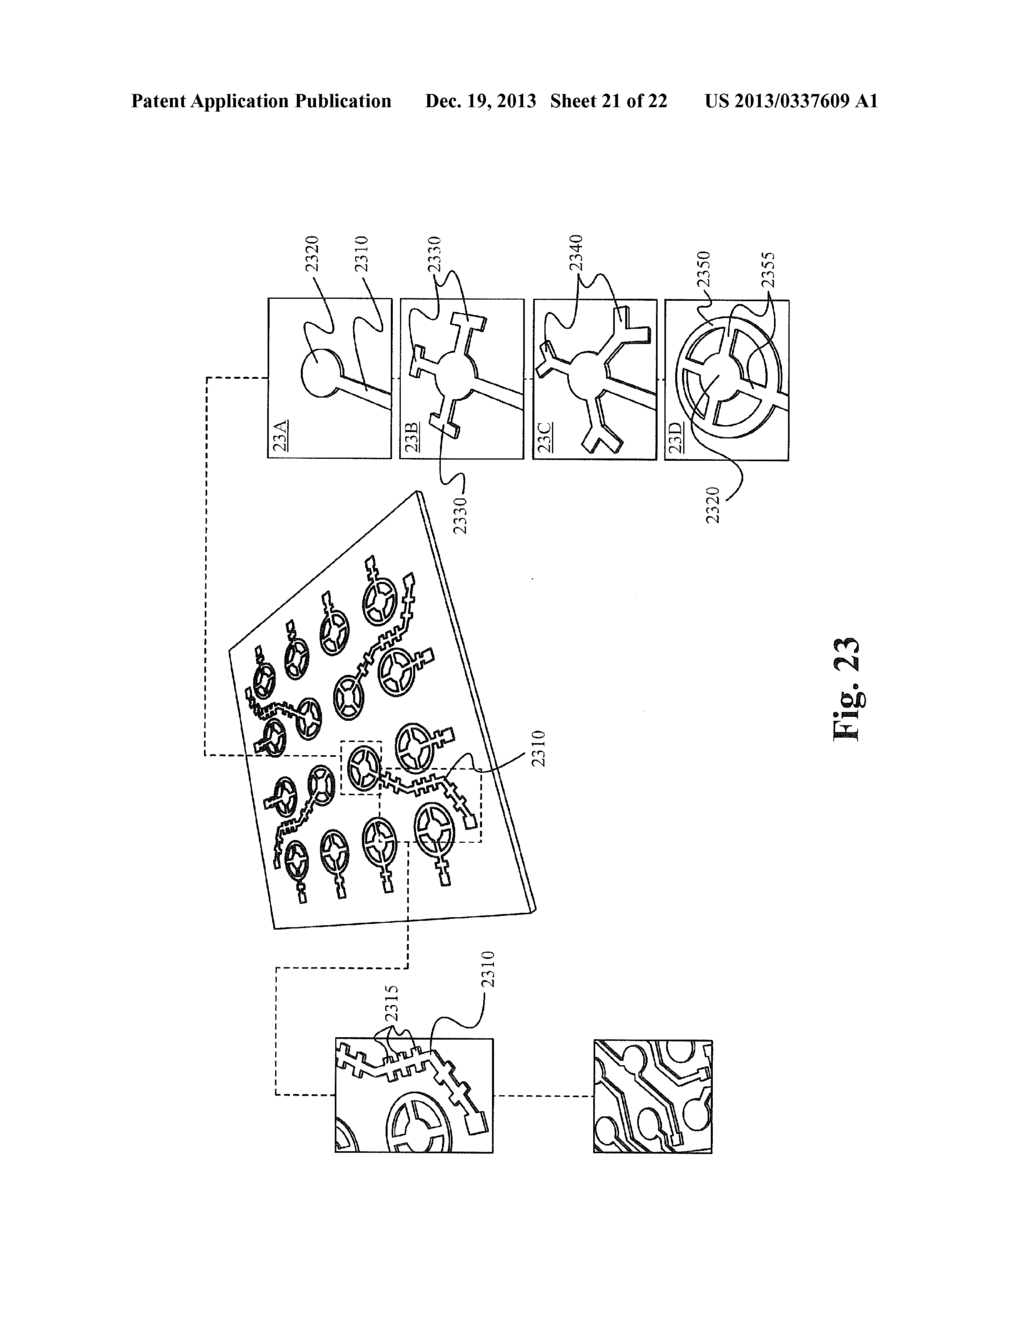 Land Unit Schematic Trusted Wiring Diagram Camera Flash Circuit Lead Frame Grid Array With Routing Connector Trace Under